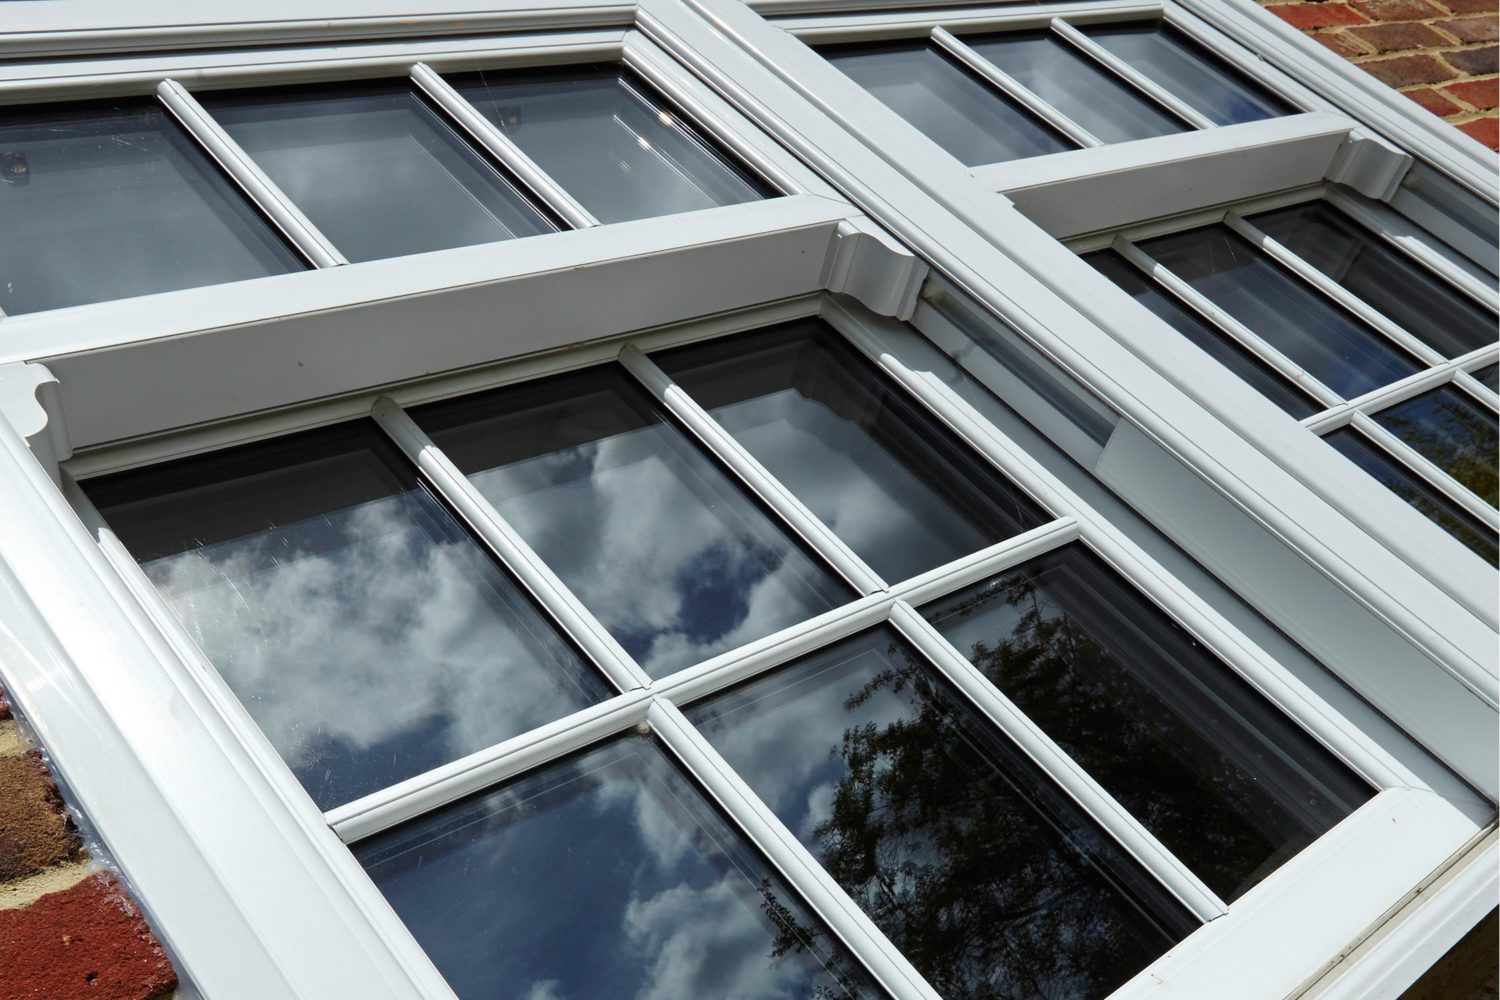 Double Glazing Prices 2019 | How Much Does Double Glazing Cost?